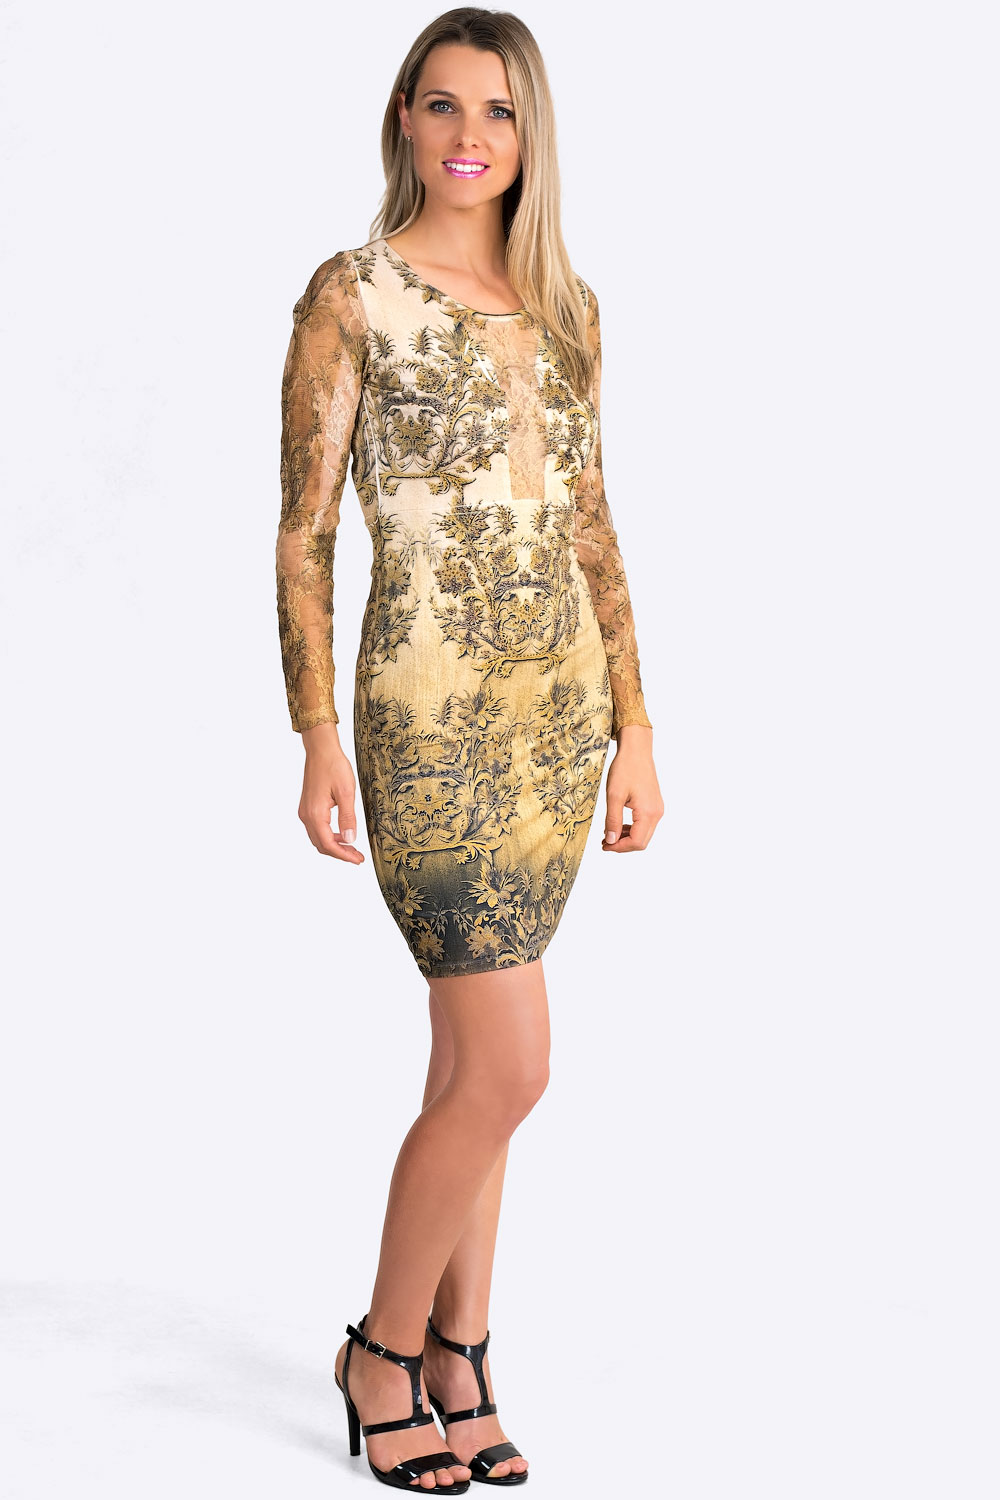 Antique Gold Print Dress With Lace Sleeves Claddio